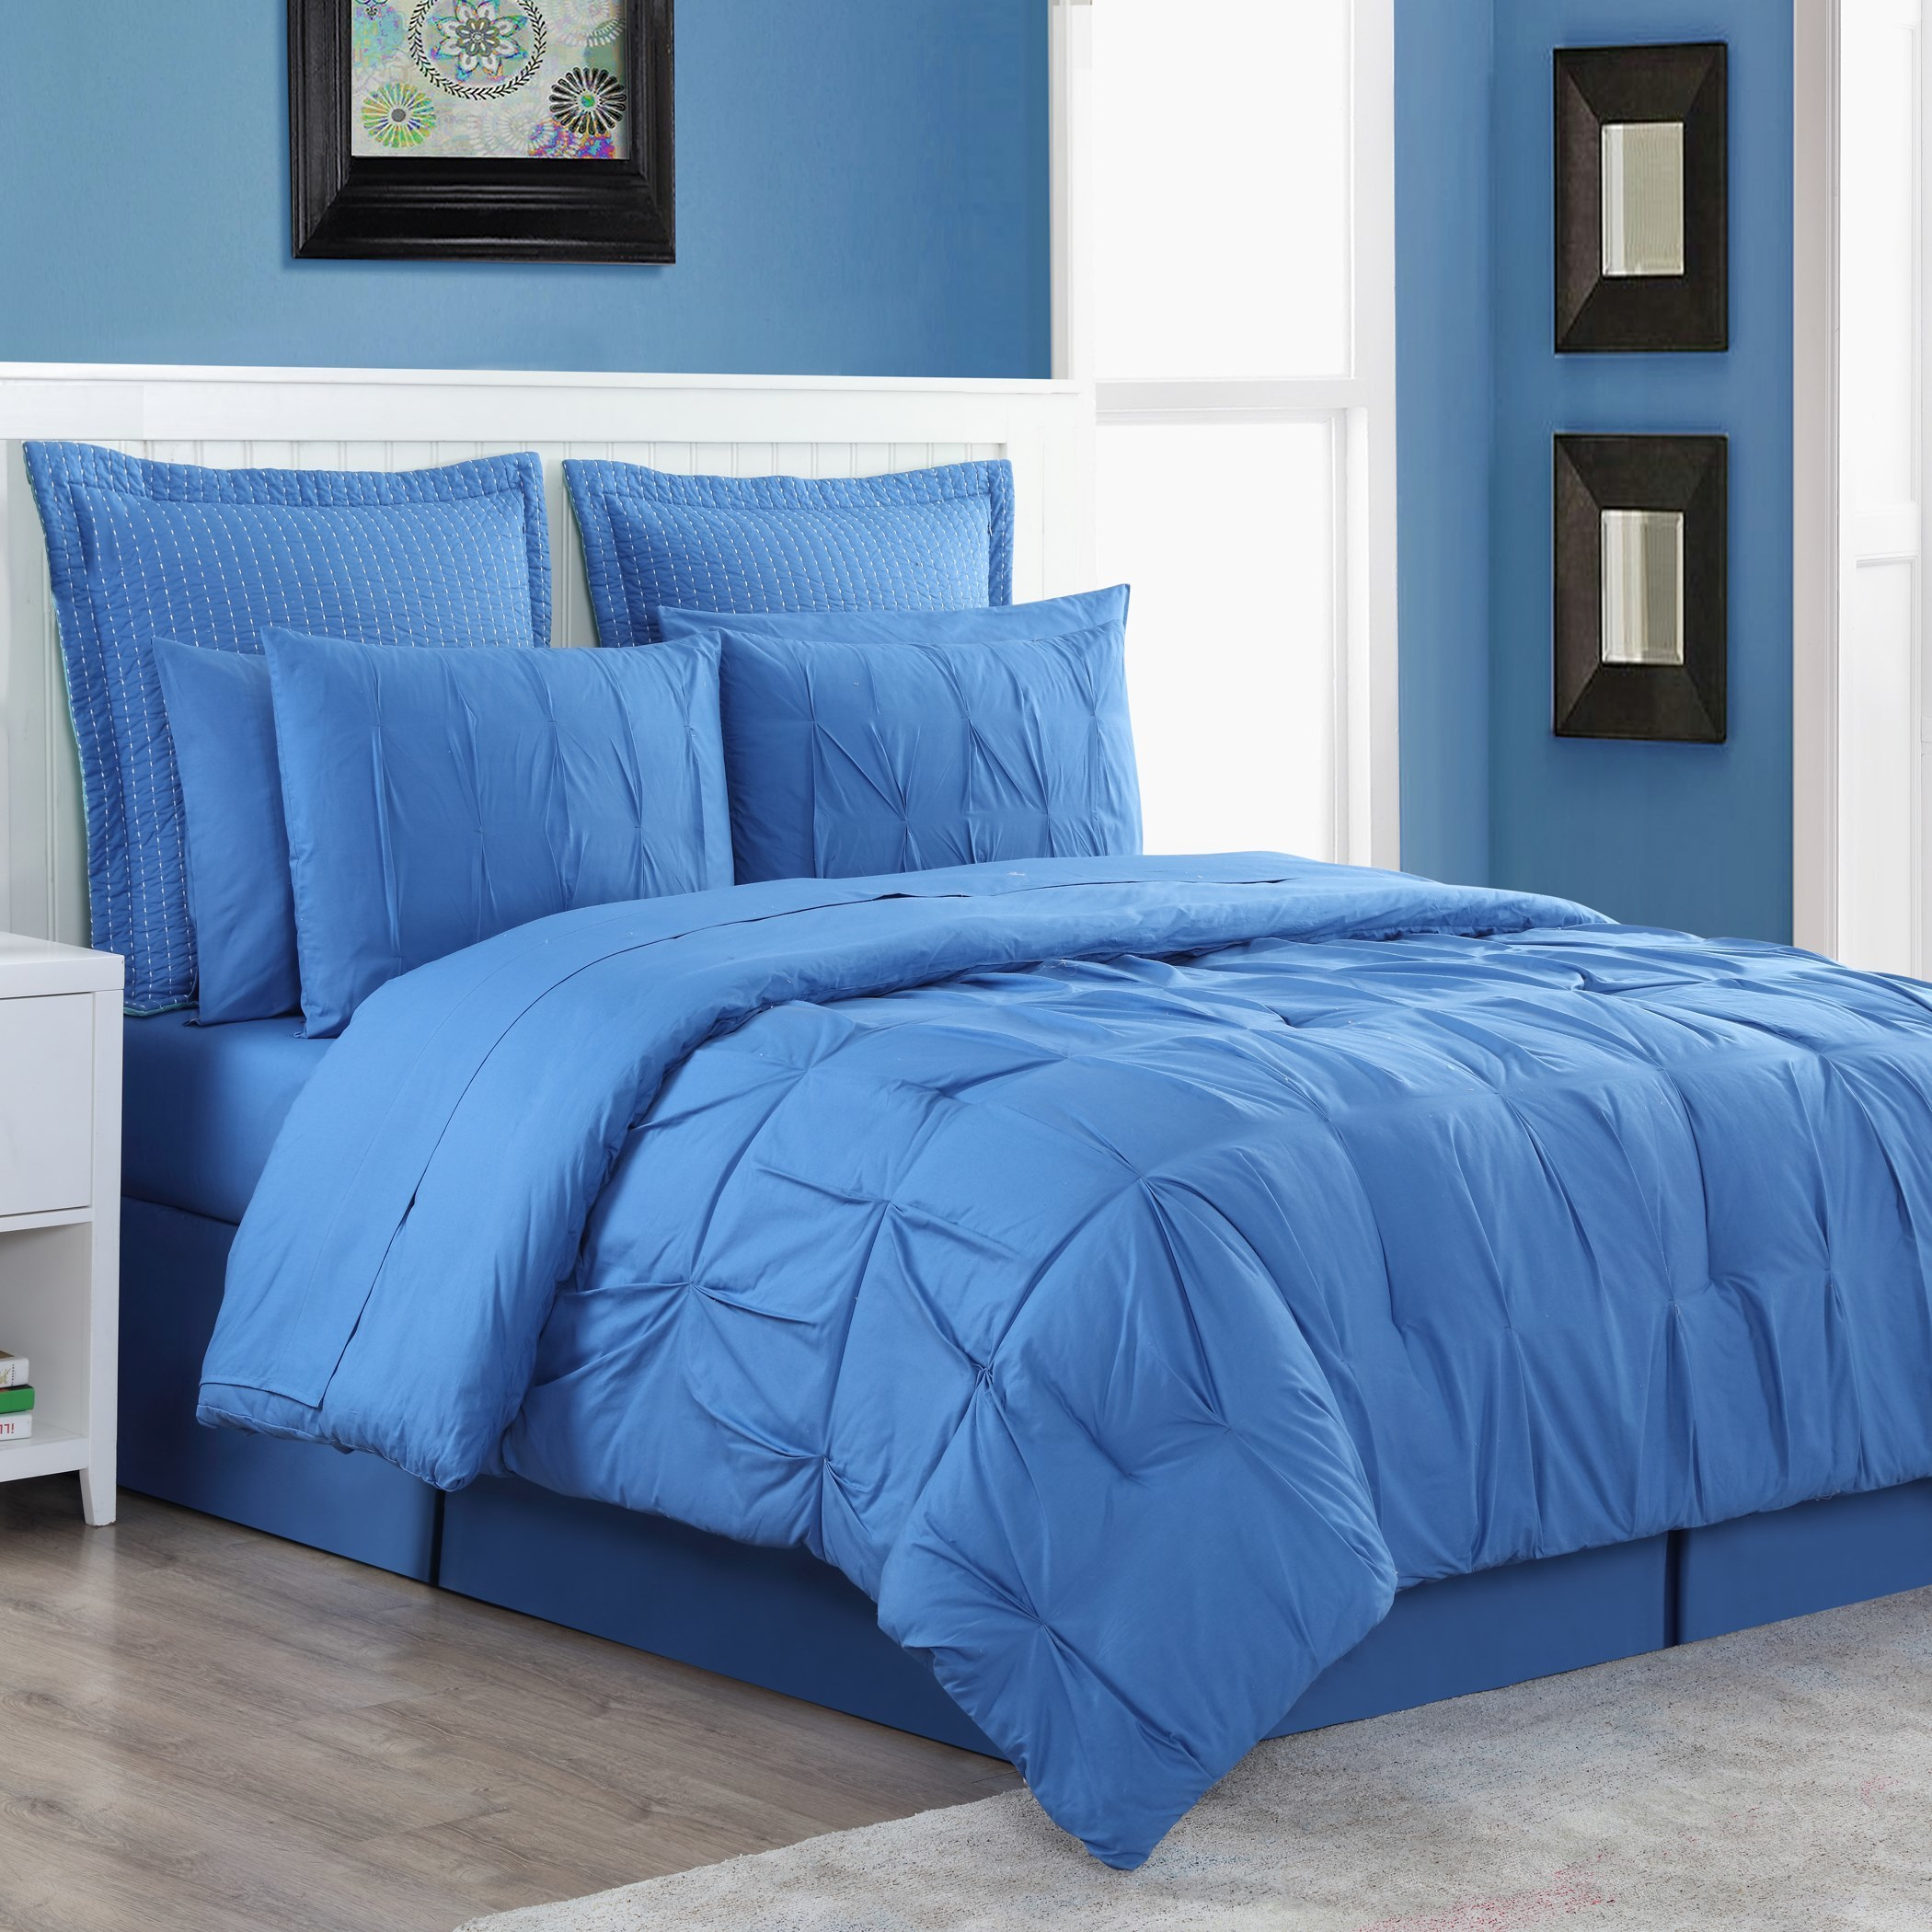 color reviews bed wayfair solid comforter bath southern pdx tide